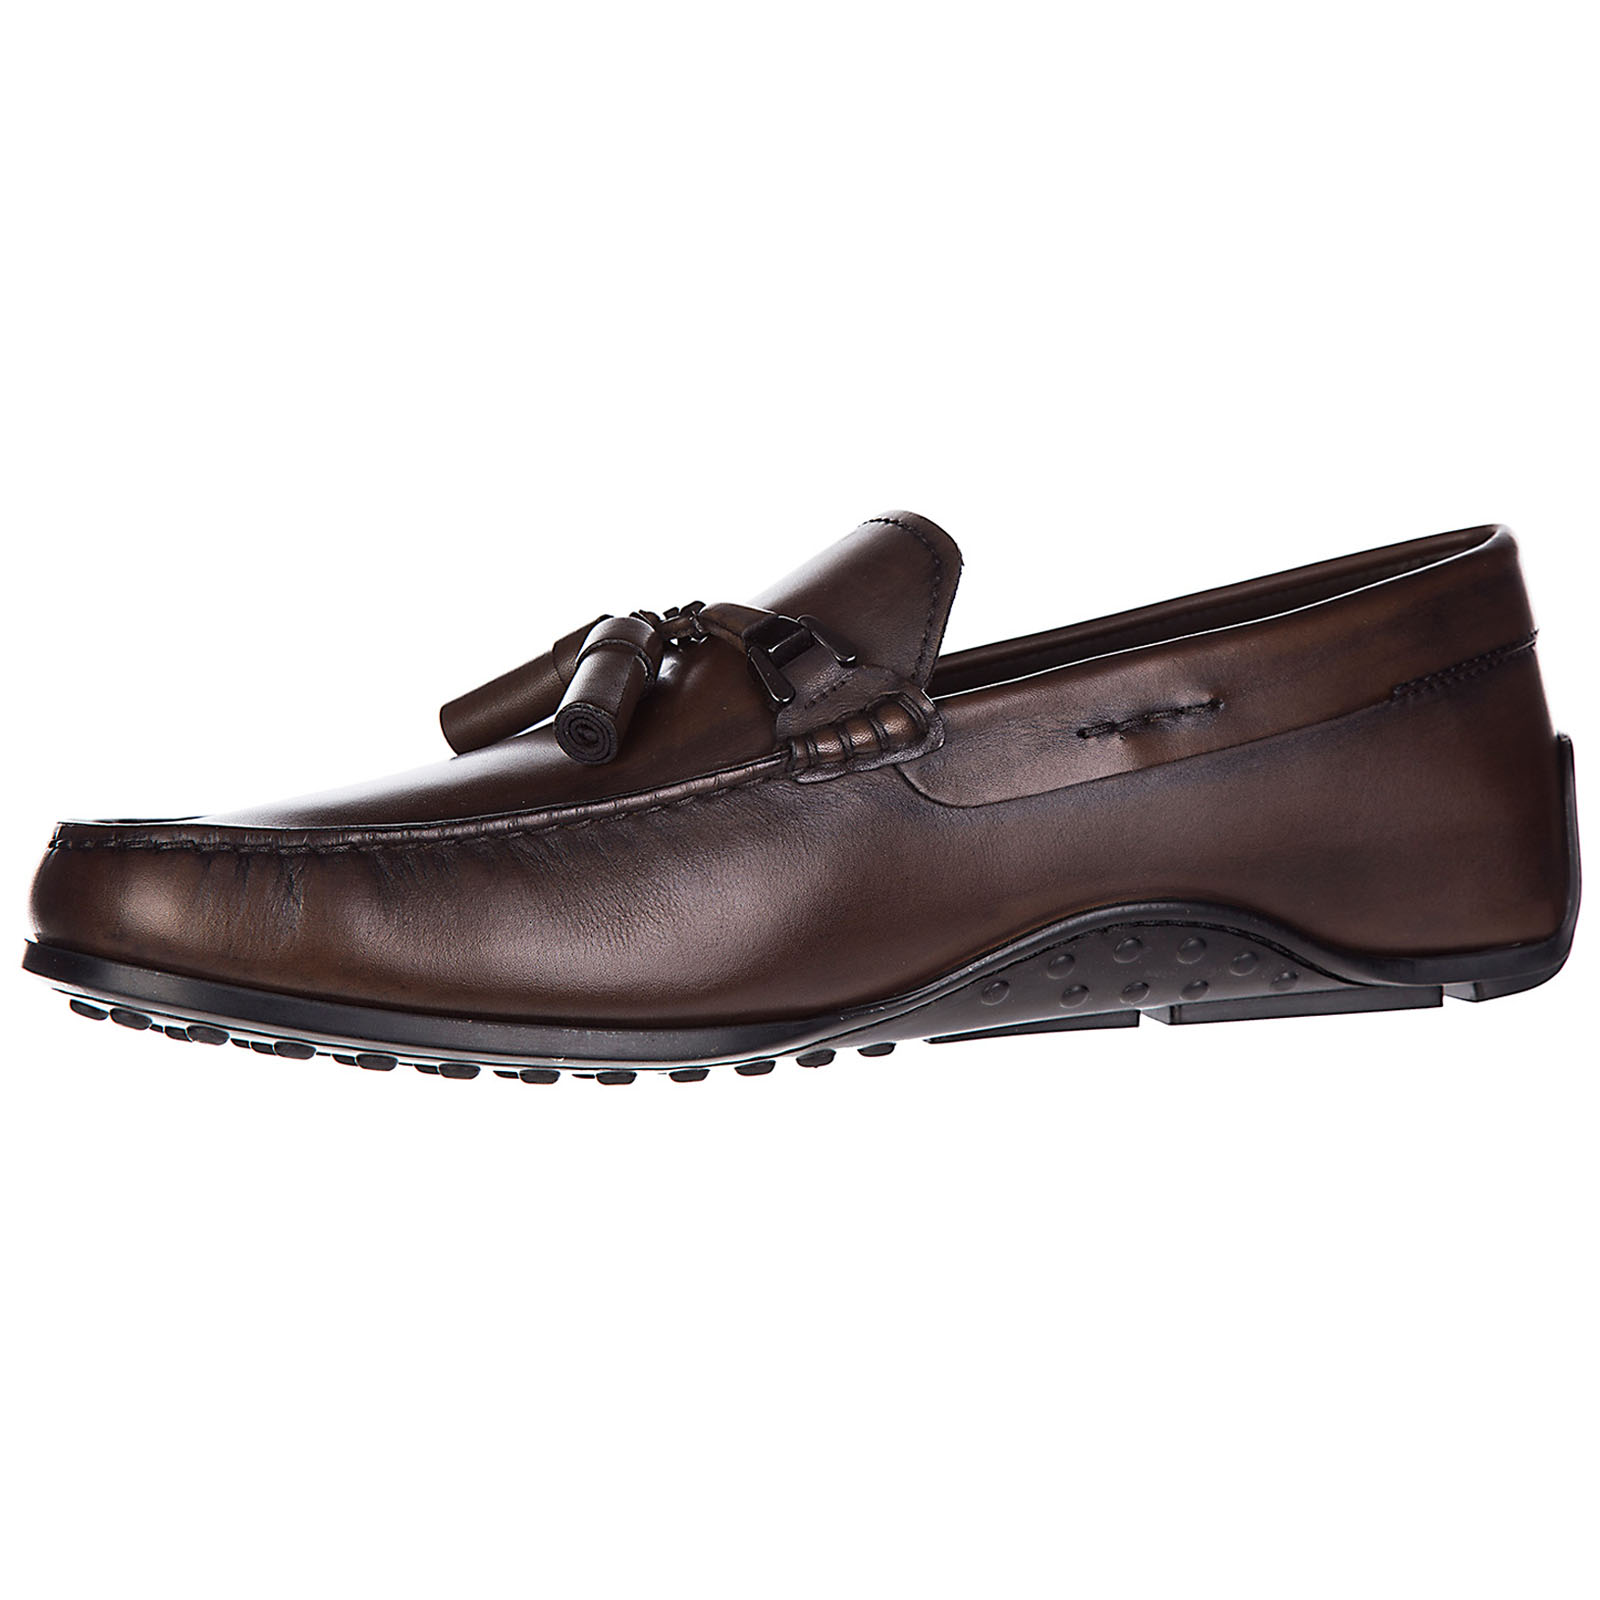 Men's leather loafers moccasins  double t nappine